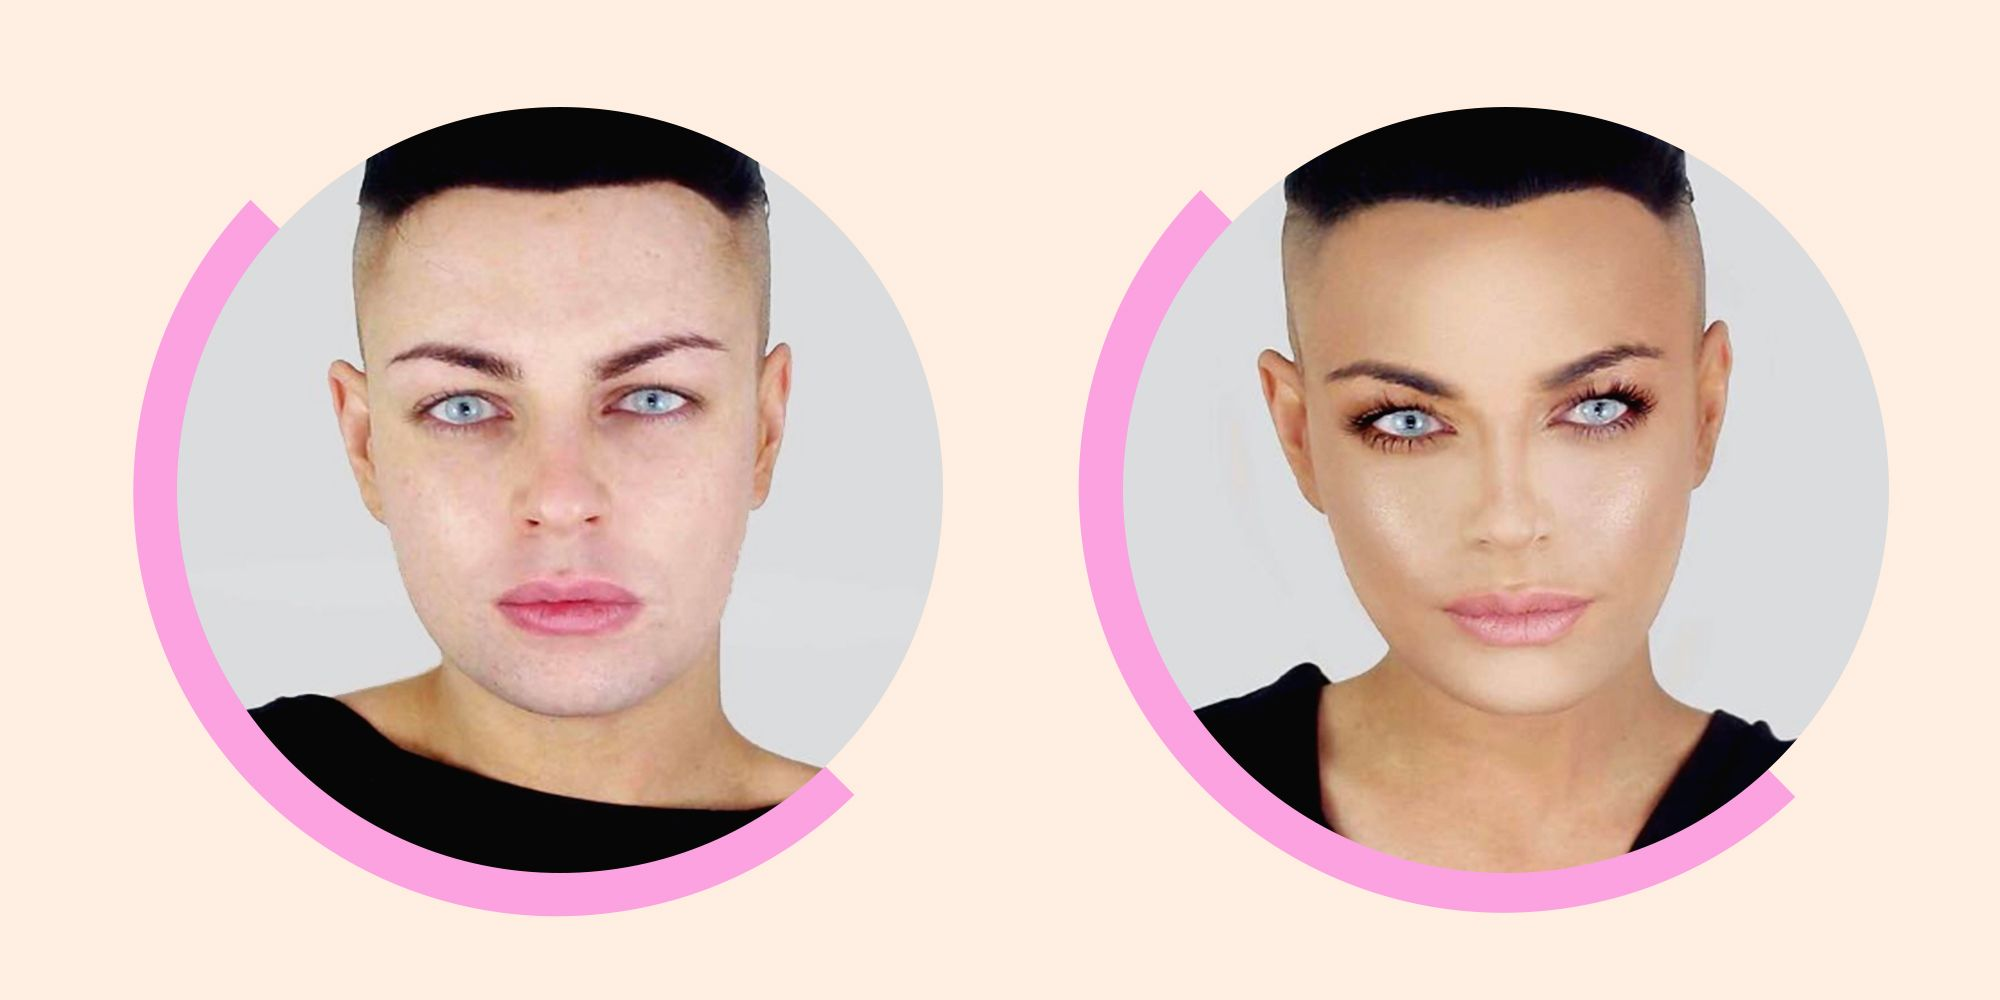 The 8 Best Makeup Tricks for Transgender Women - How to do Facial